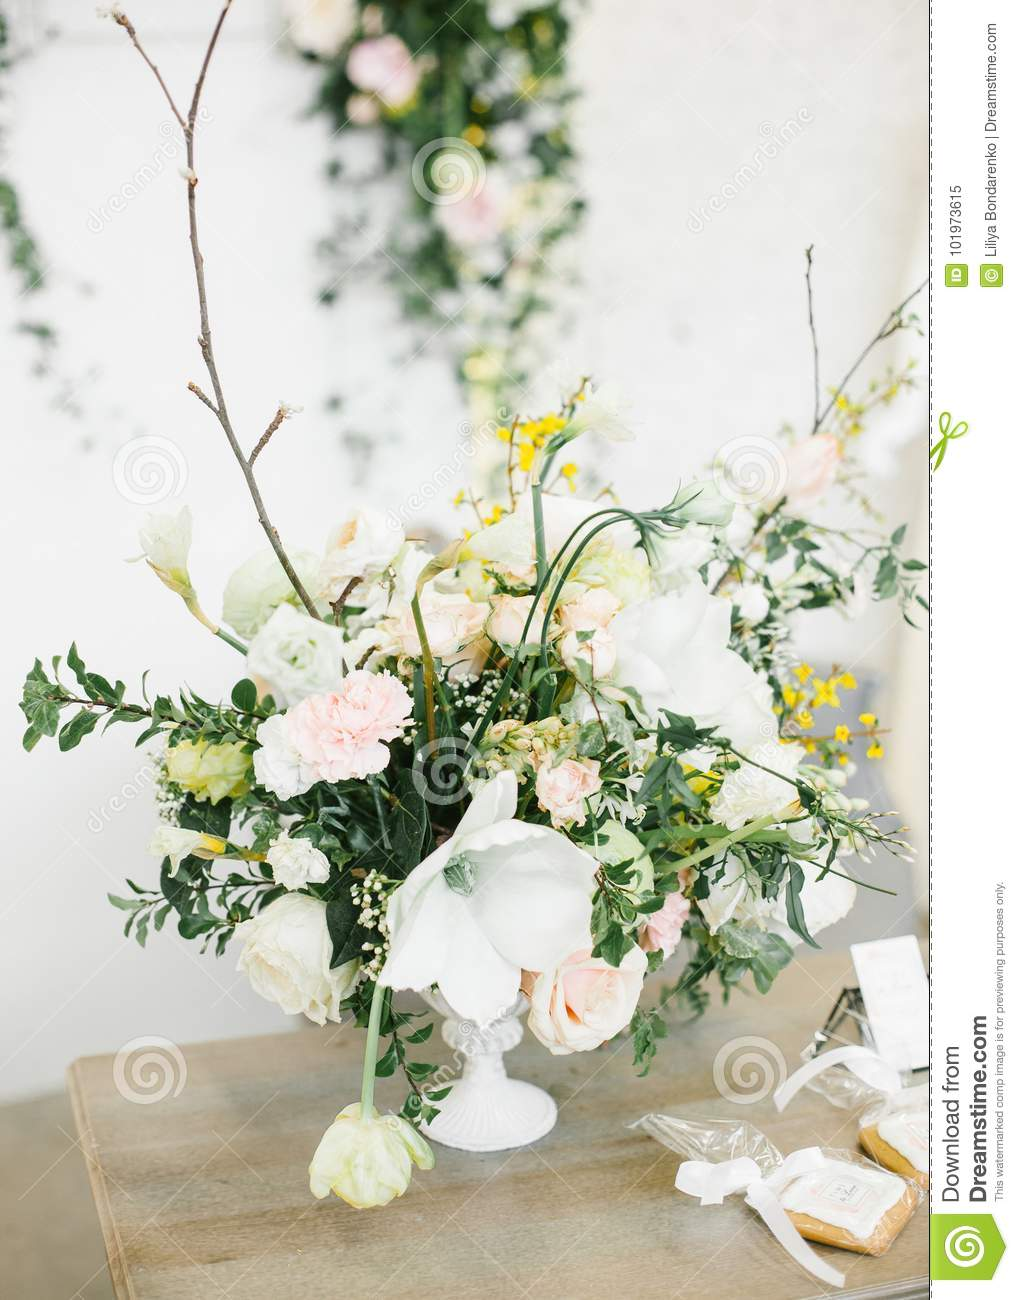 Wedding Table Centerpieces. Stock Image - Image of decorations ...